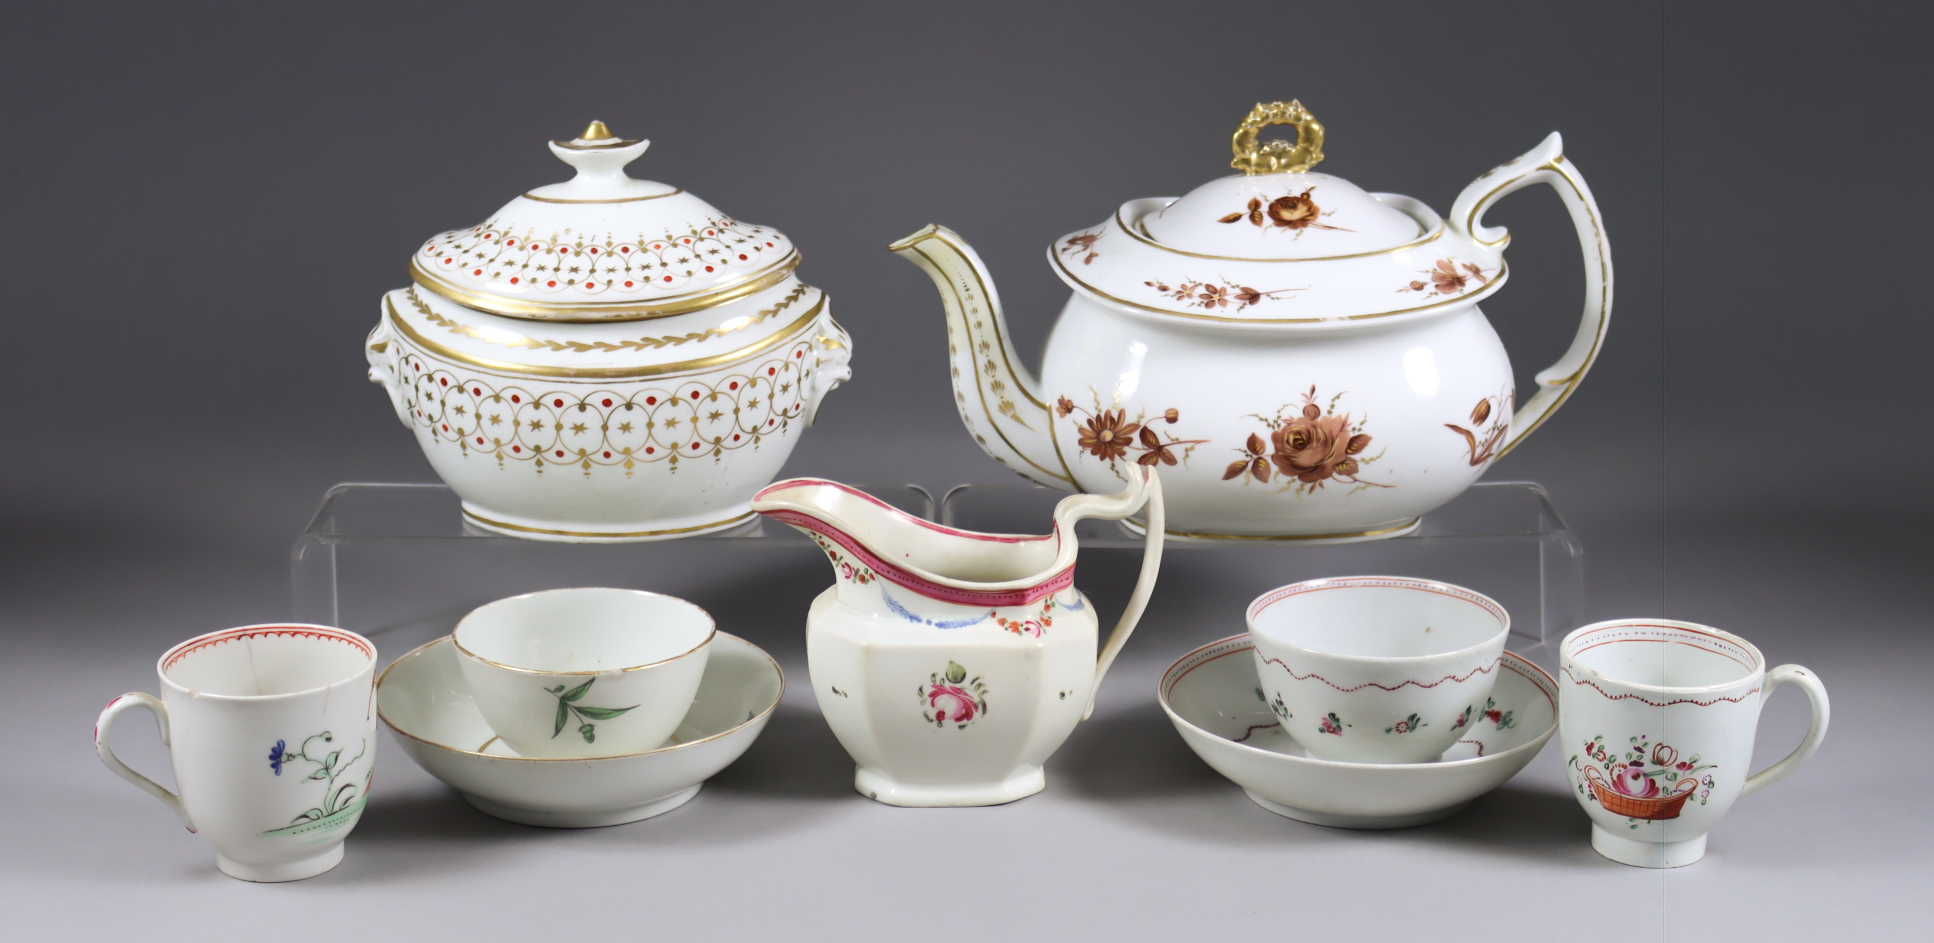 A Small Collection of English Porcelain Tea Wares, 18th/19th Century, including - cup, saucer and